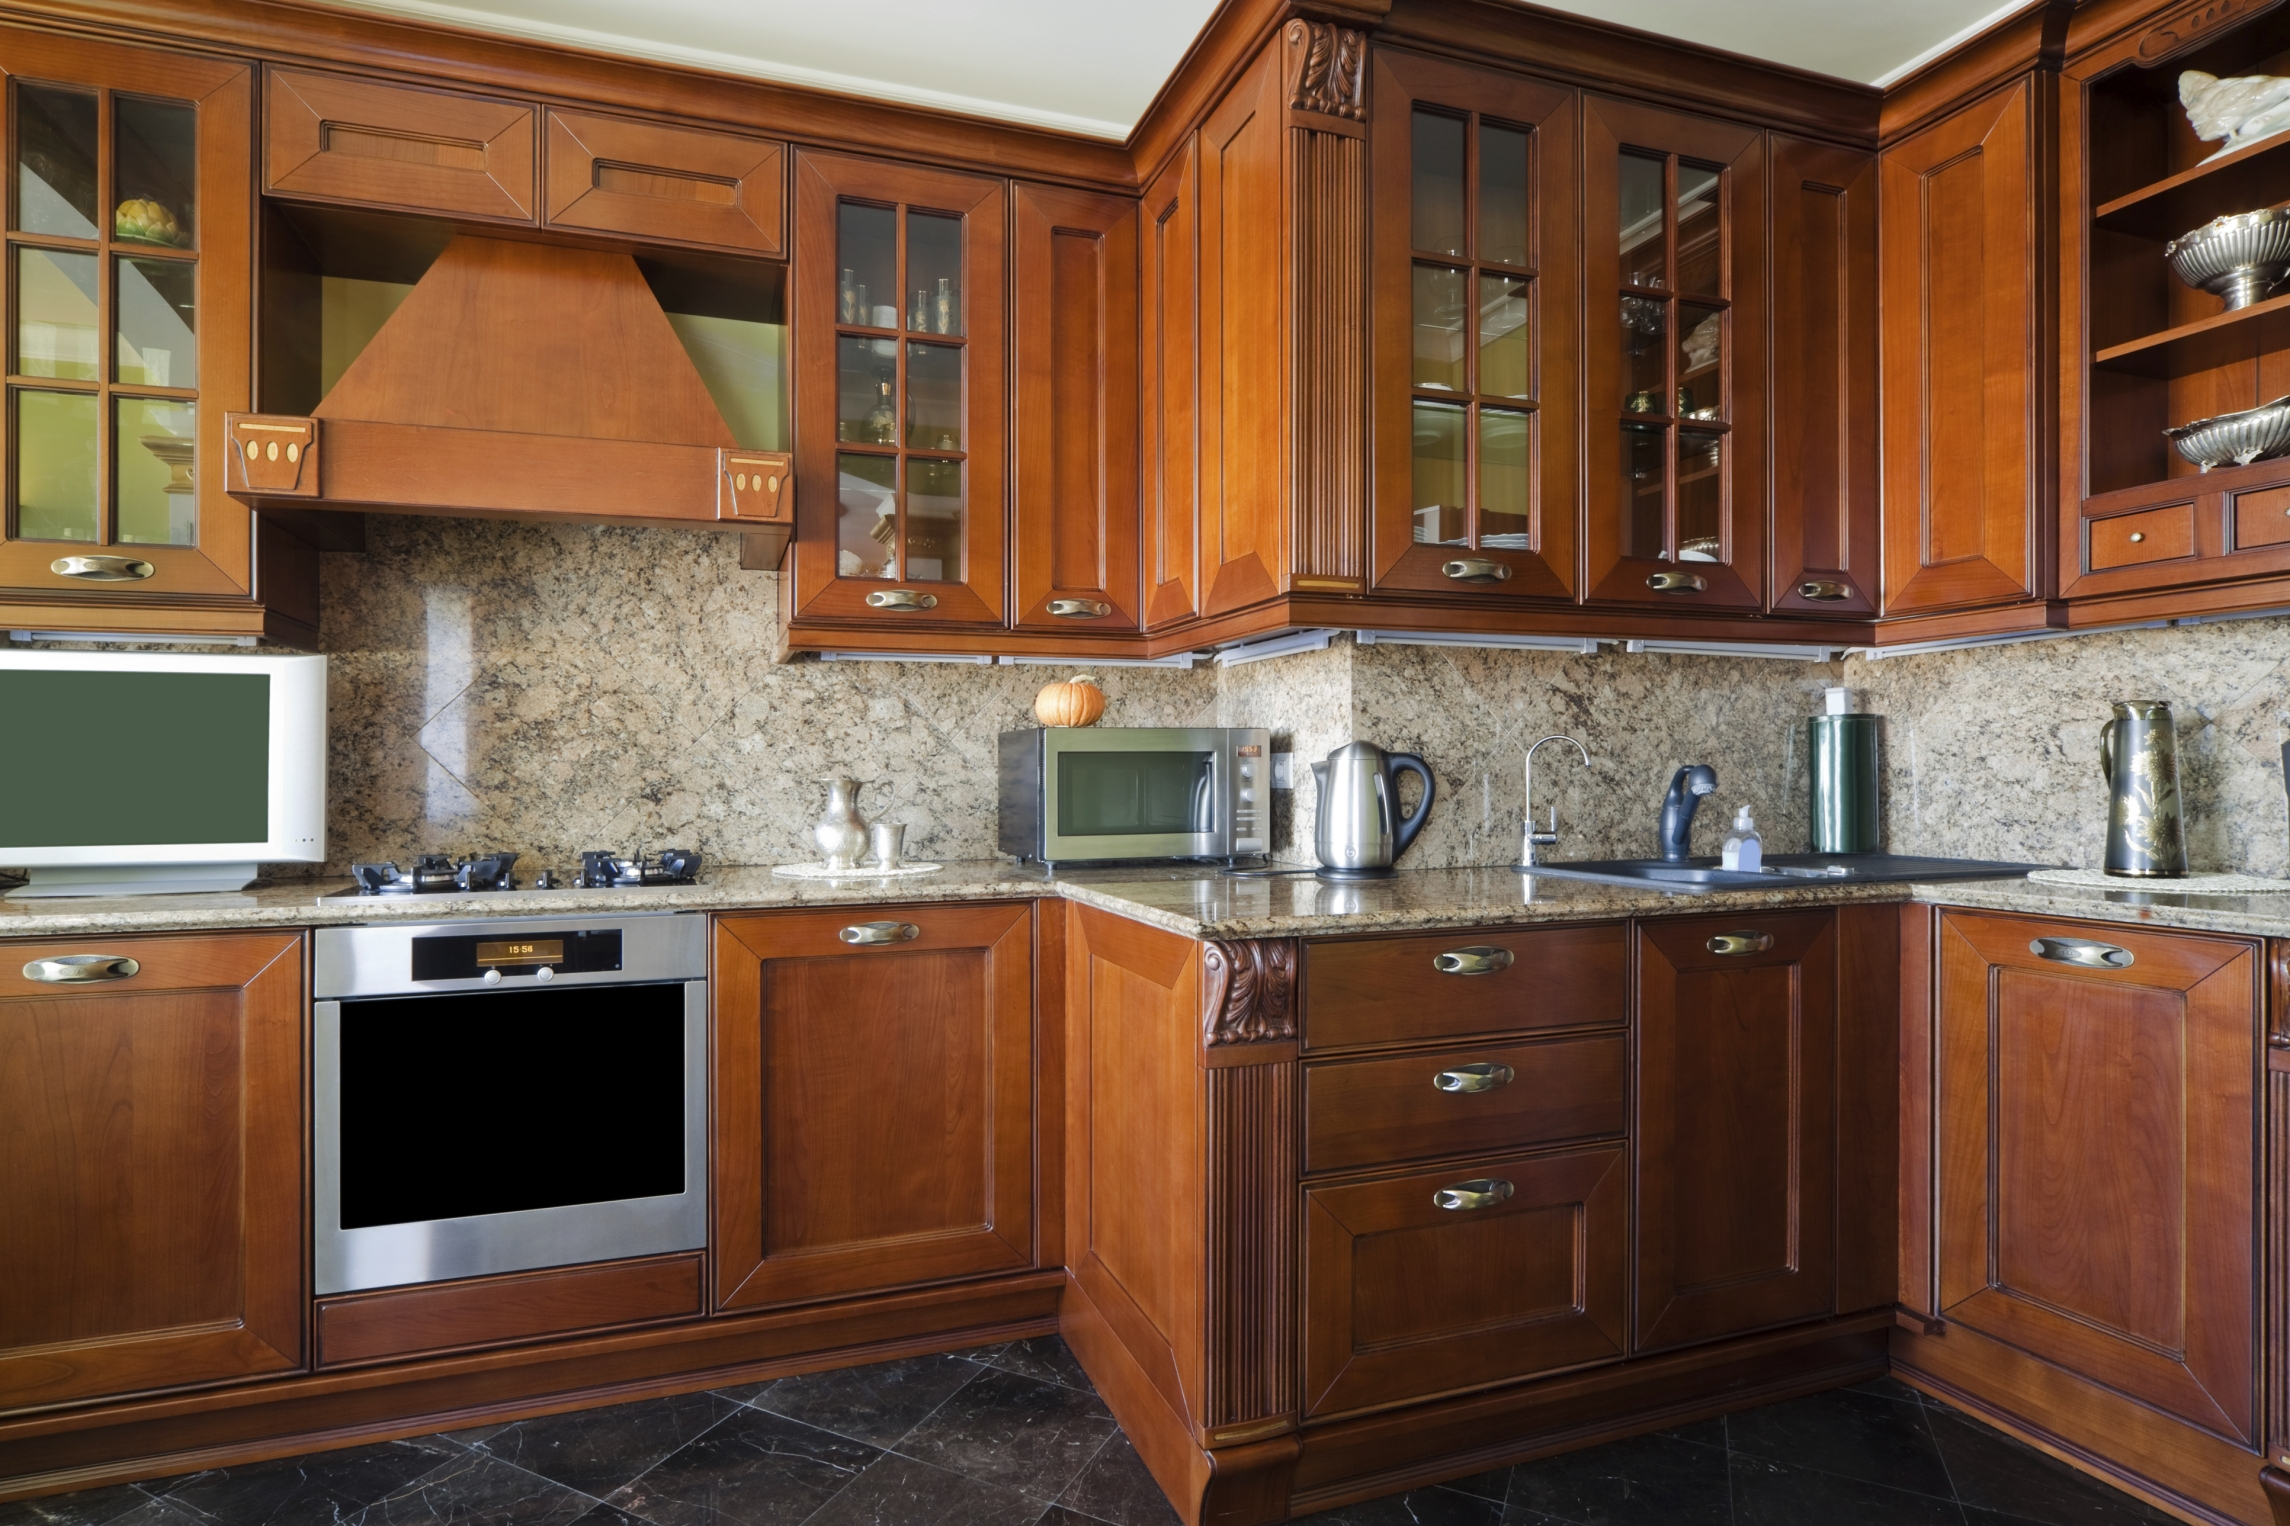 Different Kinds Of Wood For Kitchen Cabinets